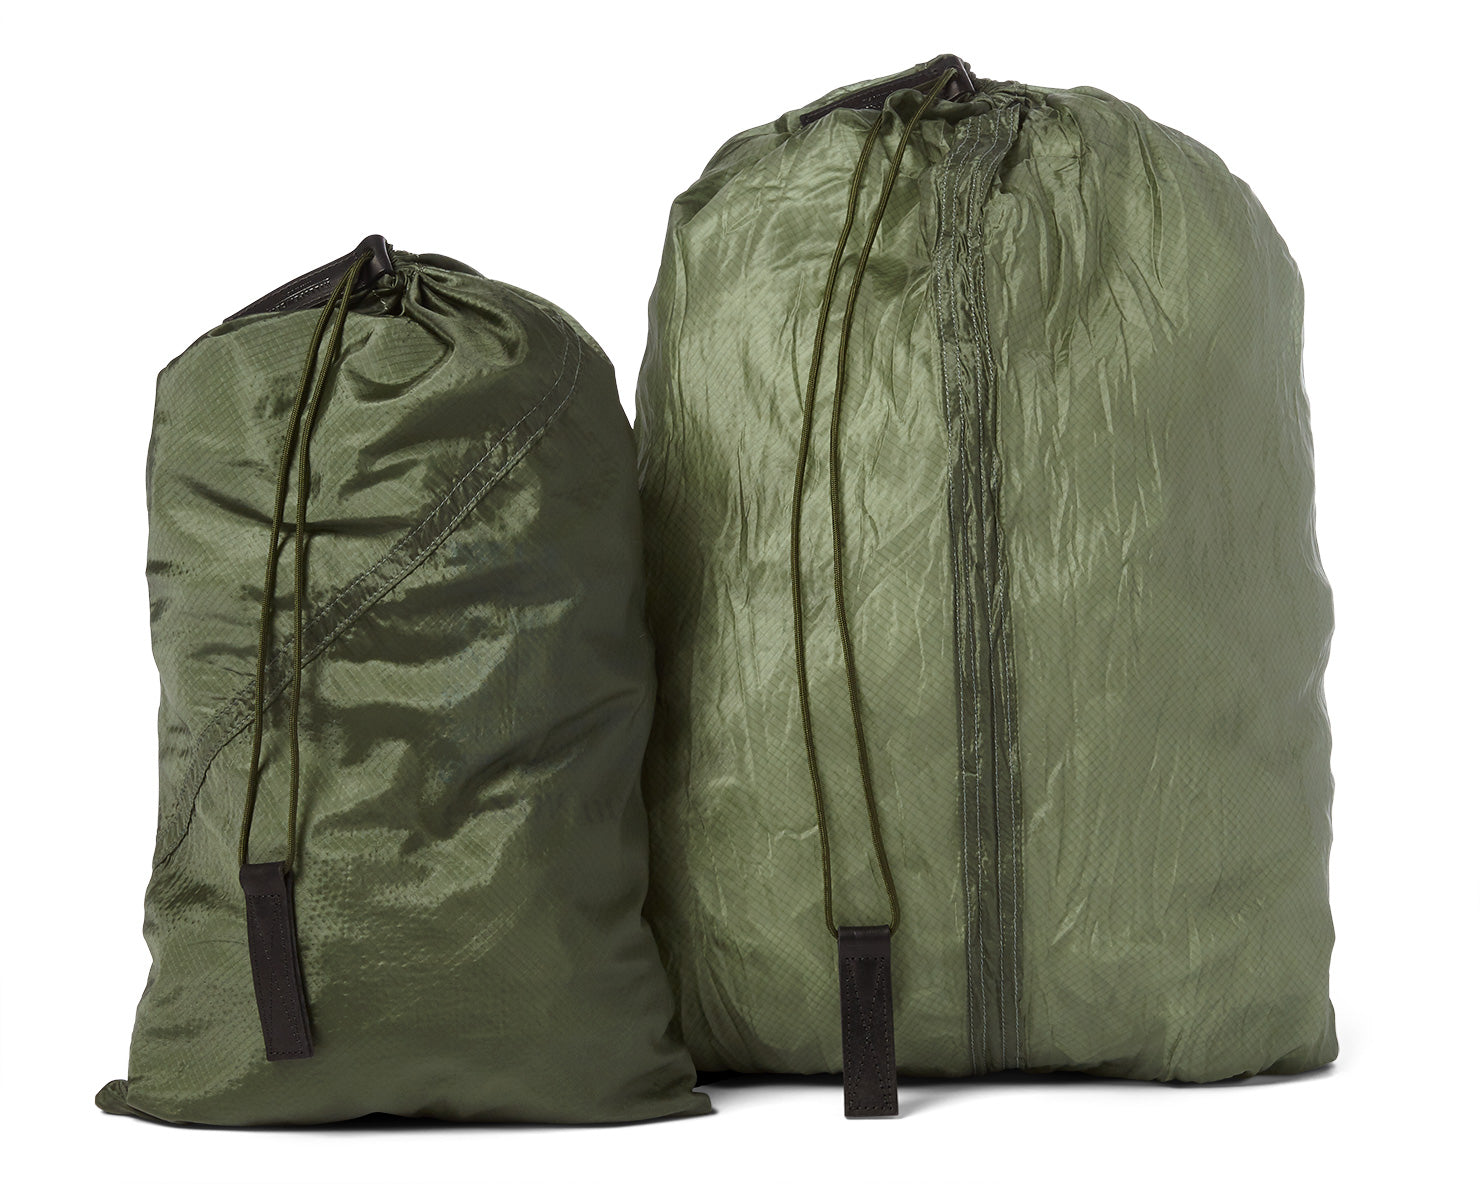 PARACHUTE BAG 2.0 | KILLSPENCER® - Olive Drab Parachute